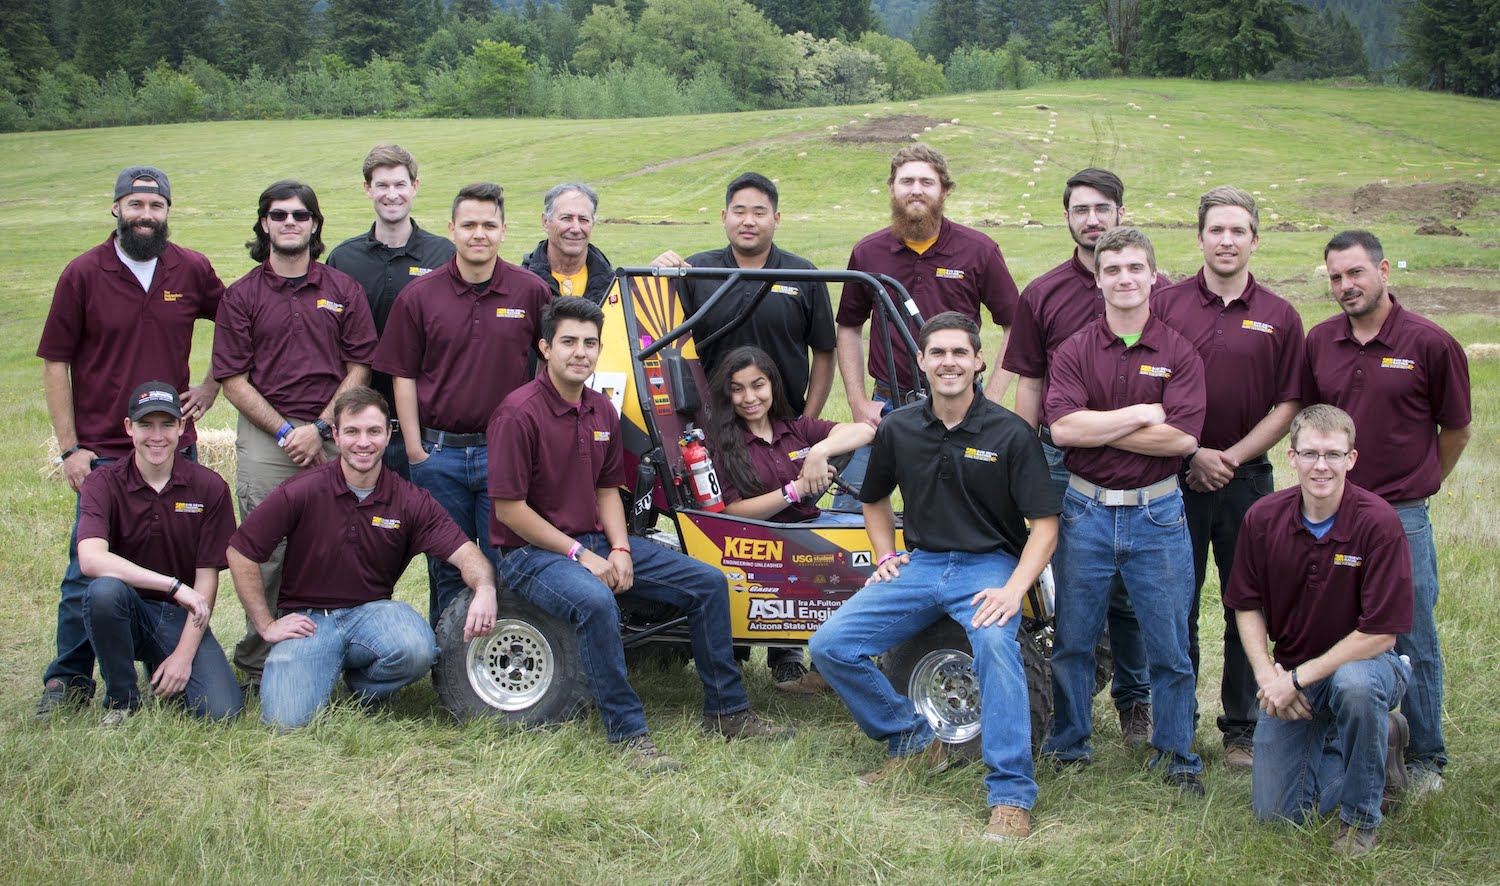 Photo of a large group of people with a race car in a field.